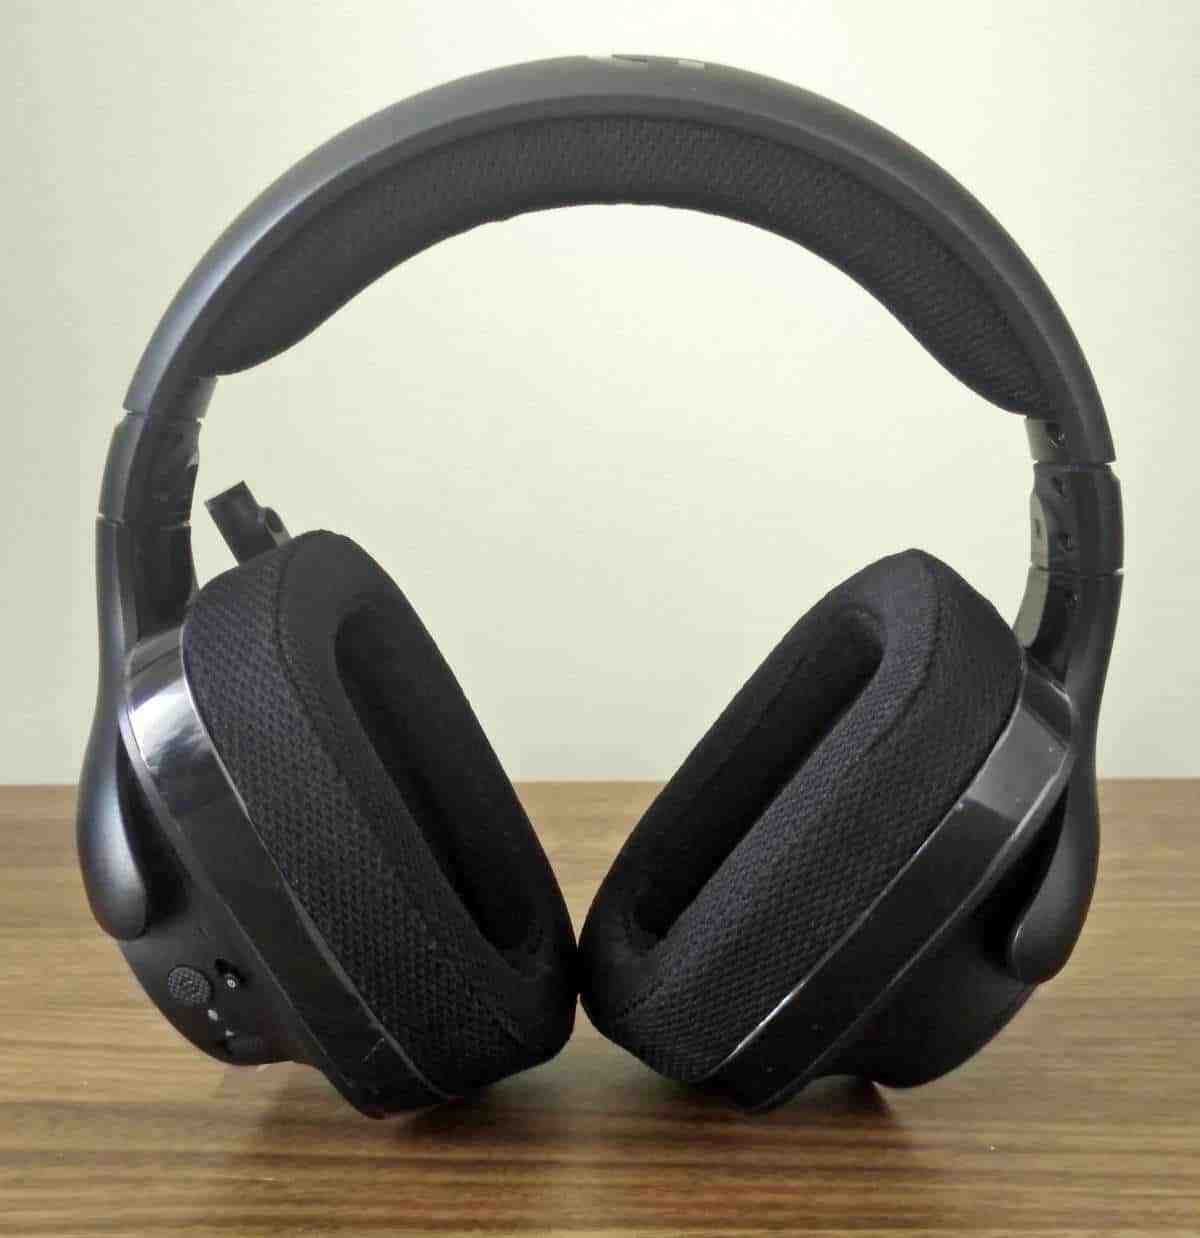 Logitech G533 Wireless Headset Review - The Streaming Blog